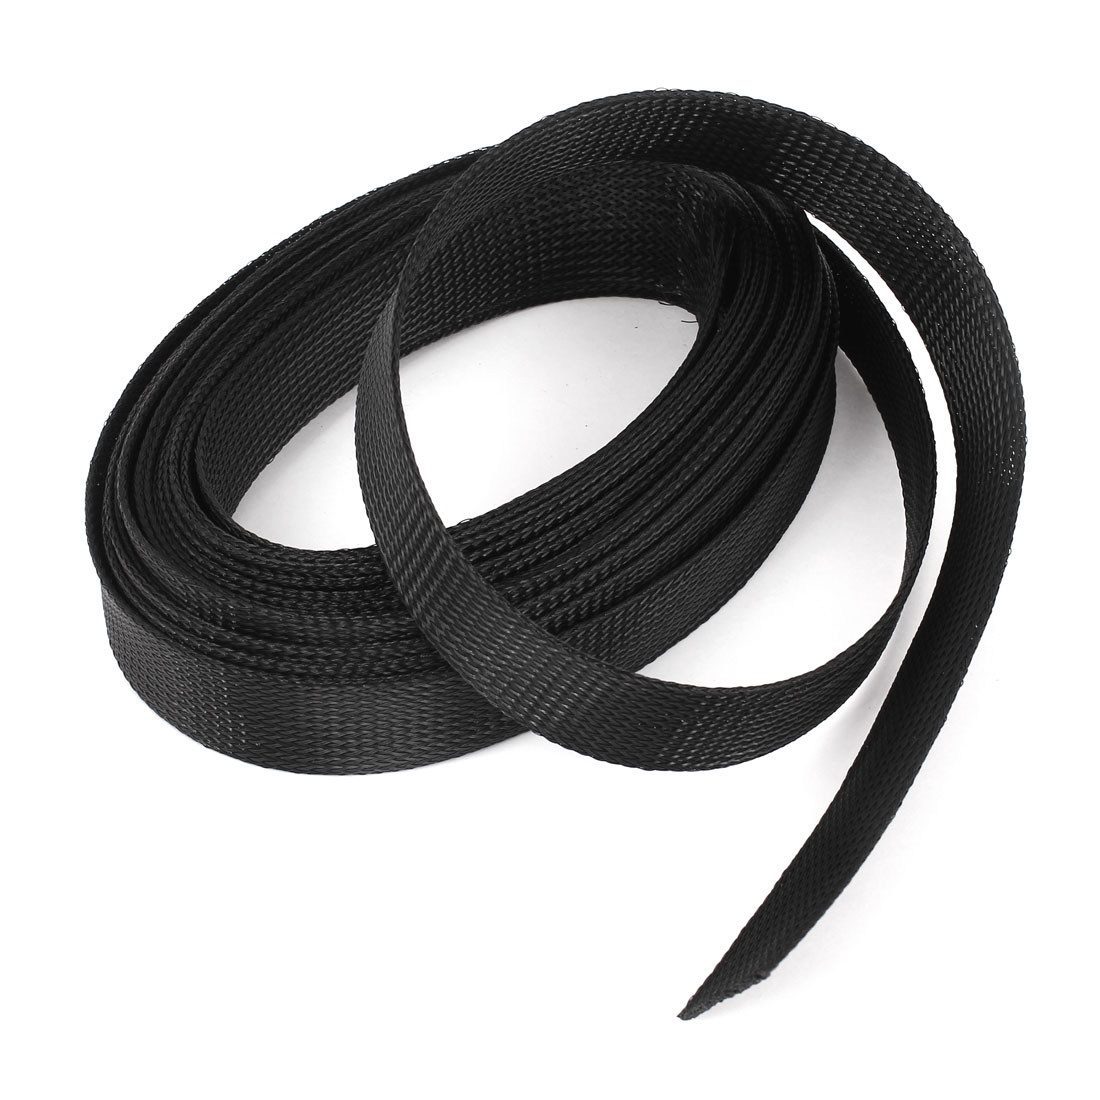 8m Long 30mm Wide Black Nylon Braided Elastic Expandable Sleeving Wire Harness Cable